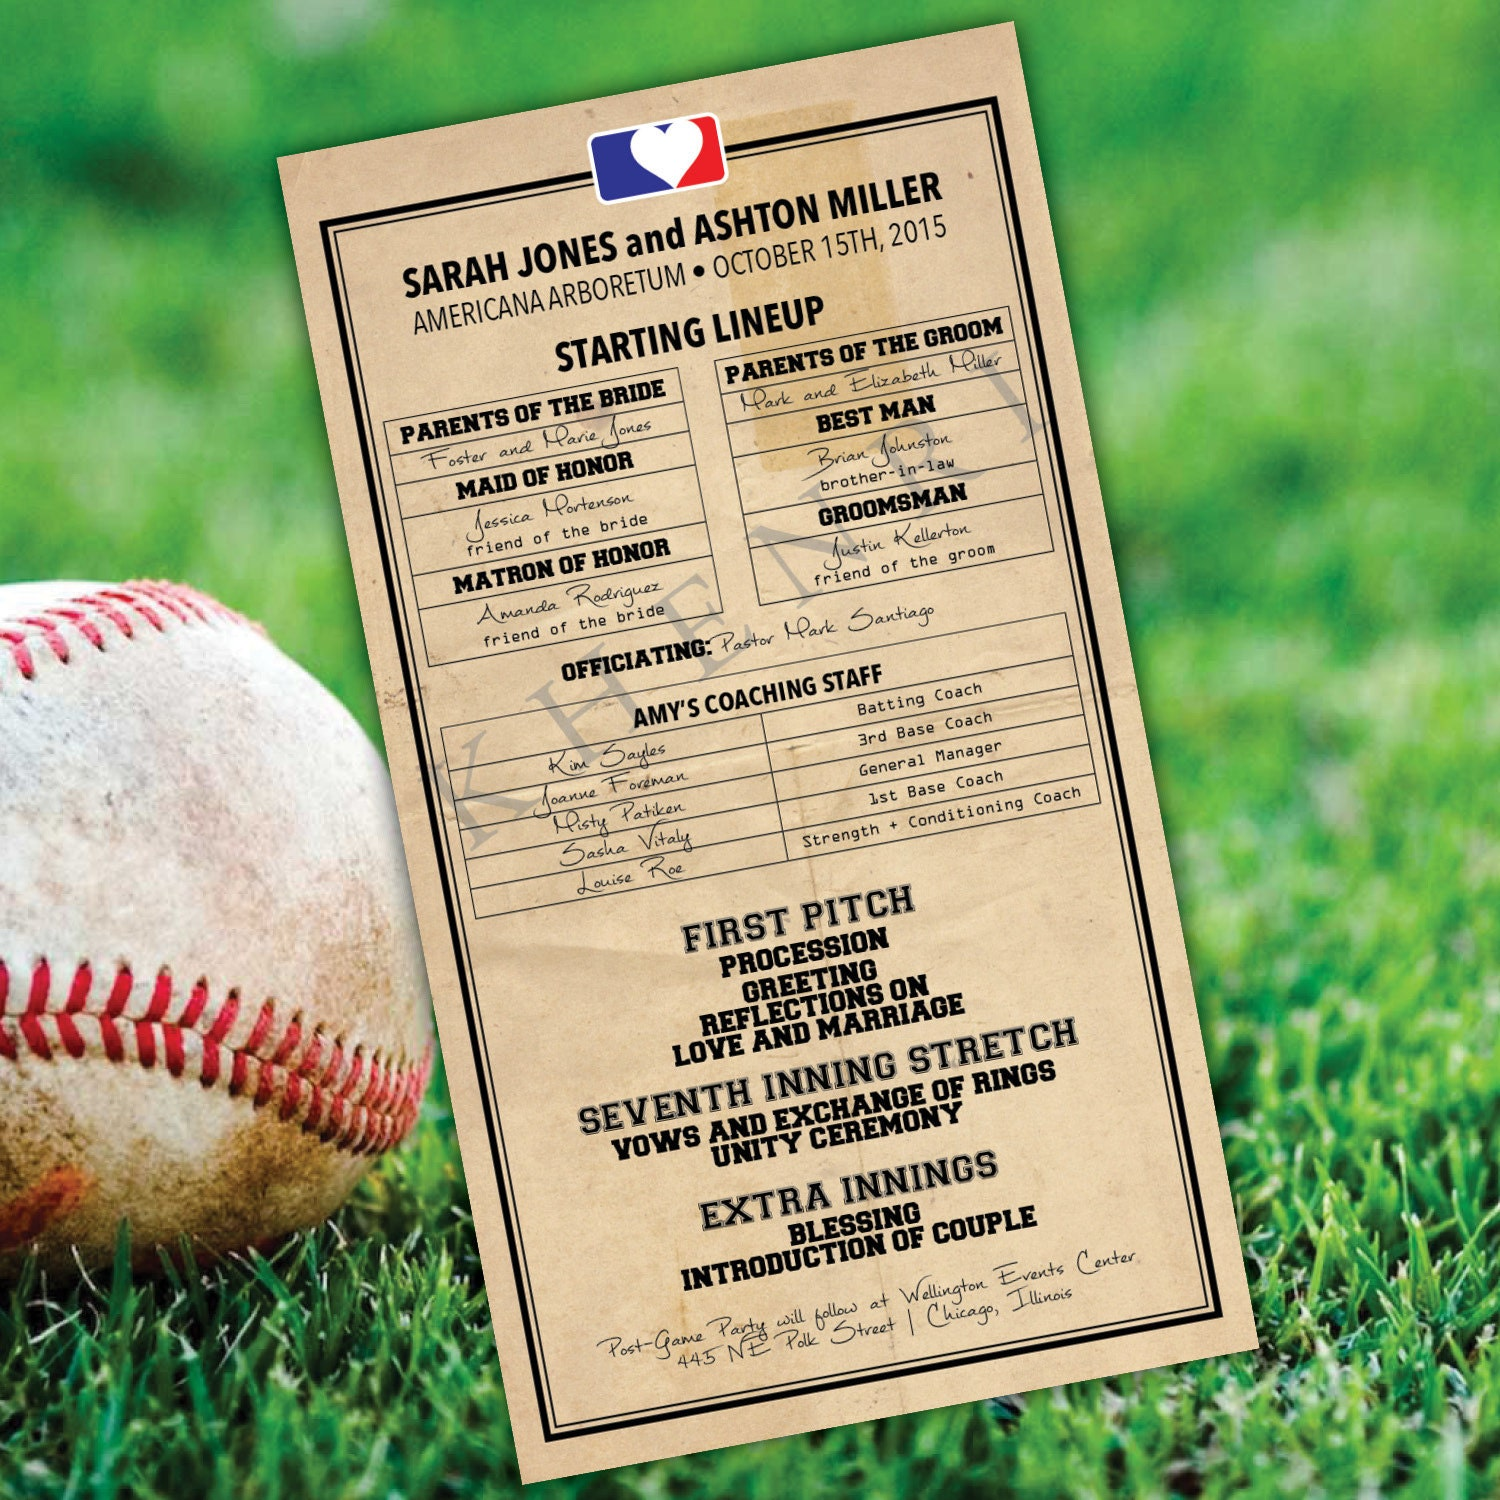 This is a photo of Mesmerizing Printable Lineup Card